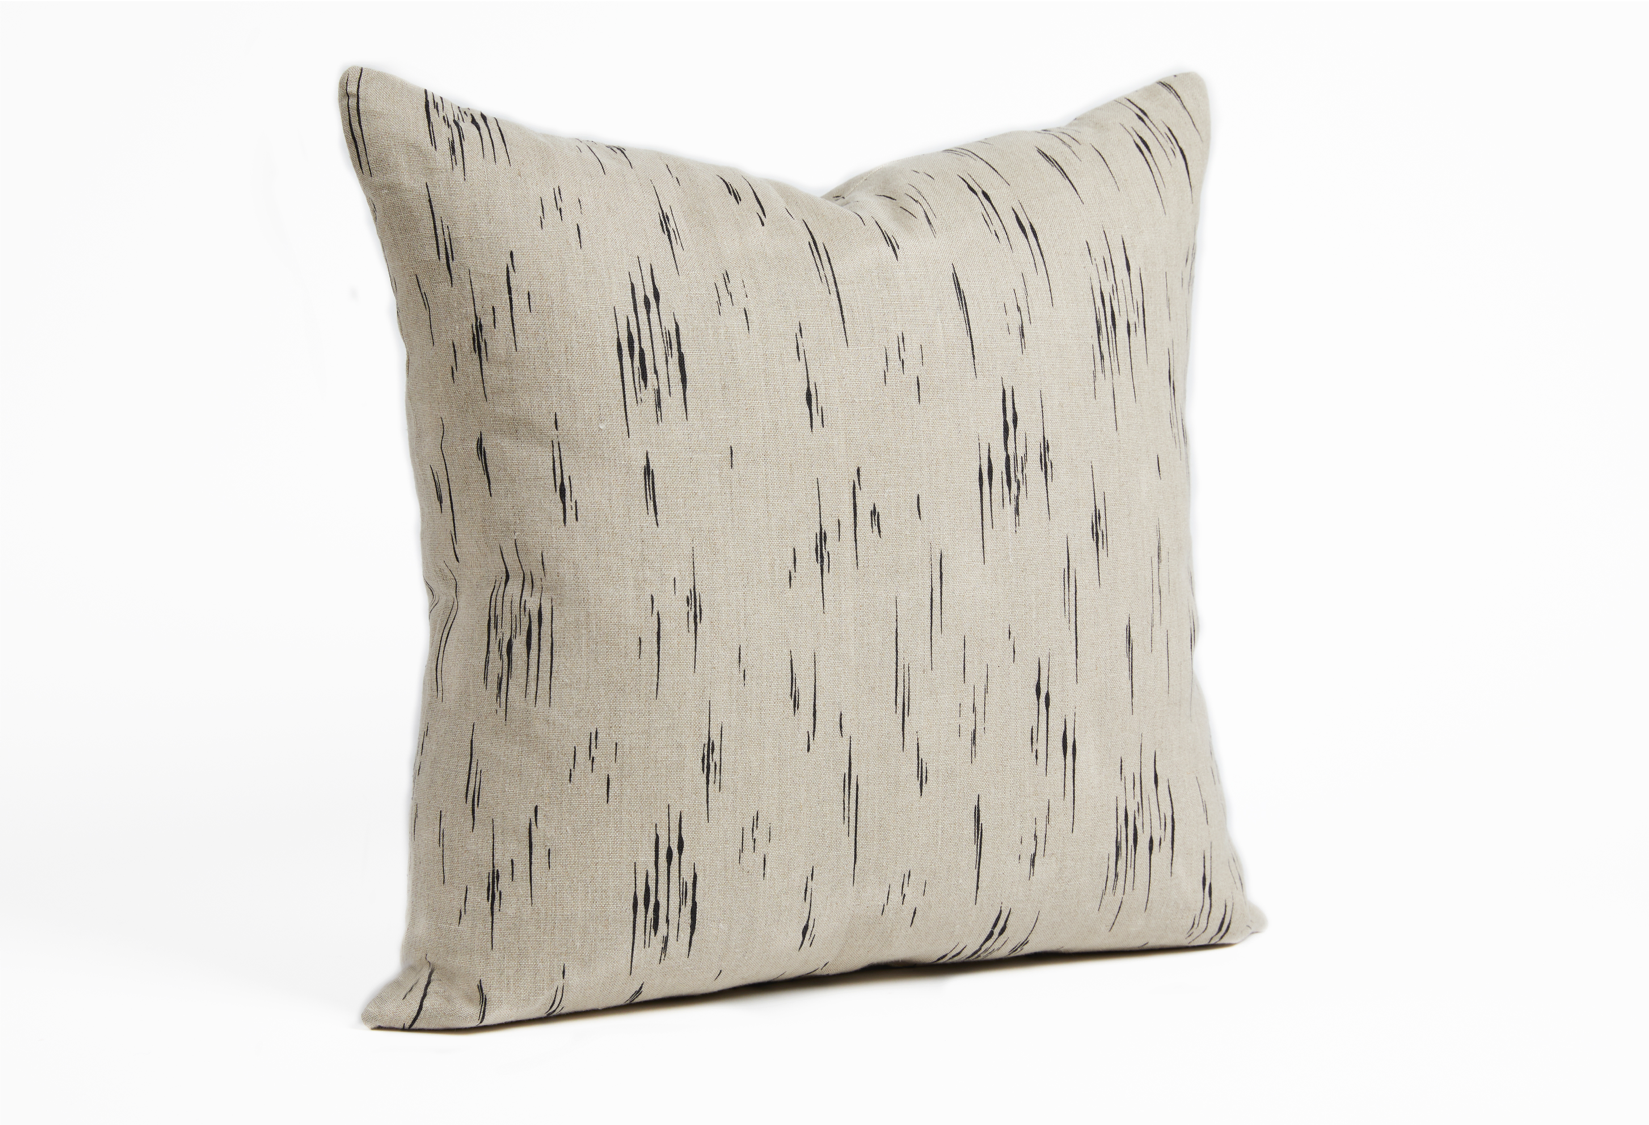 Decorative Pillow.